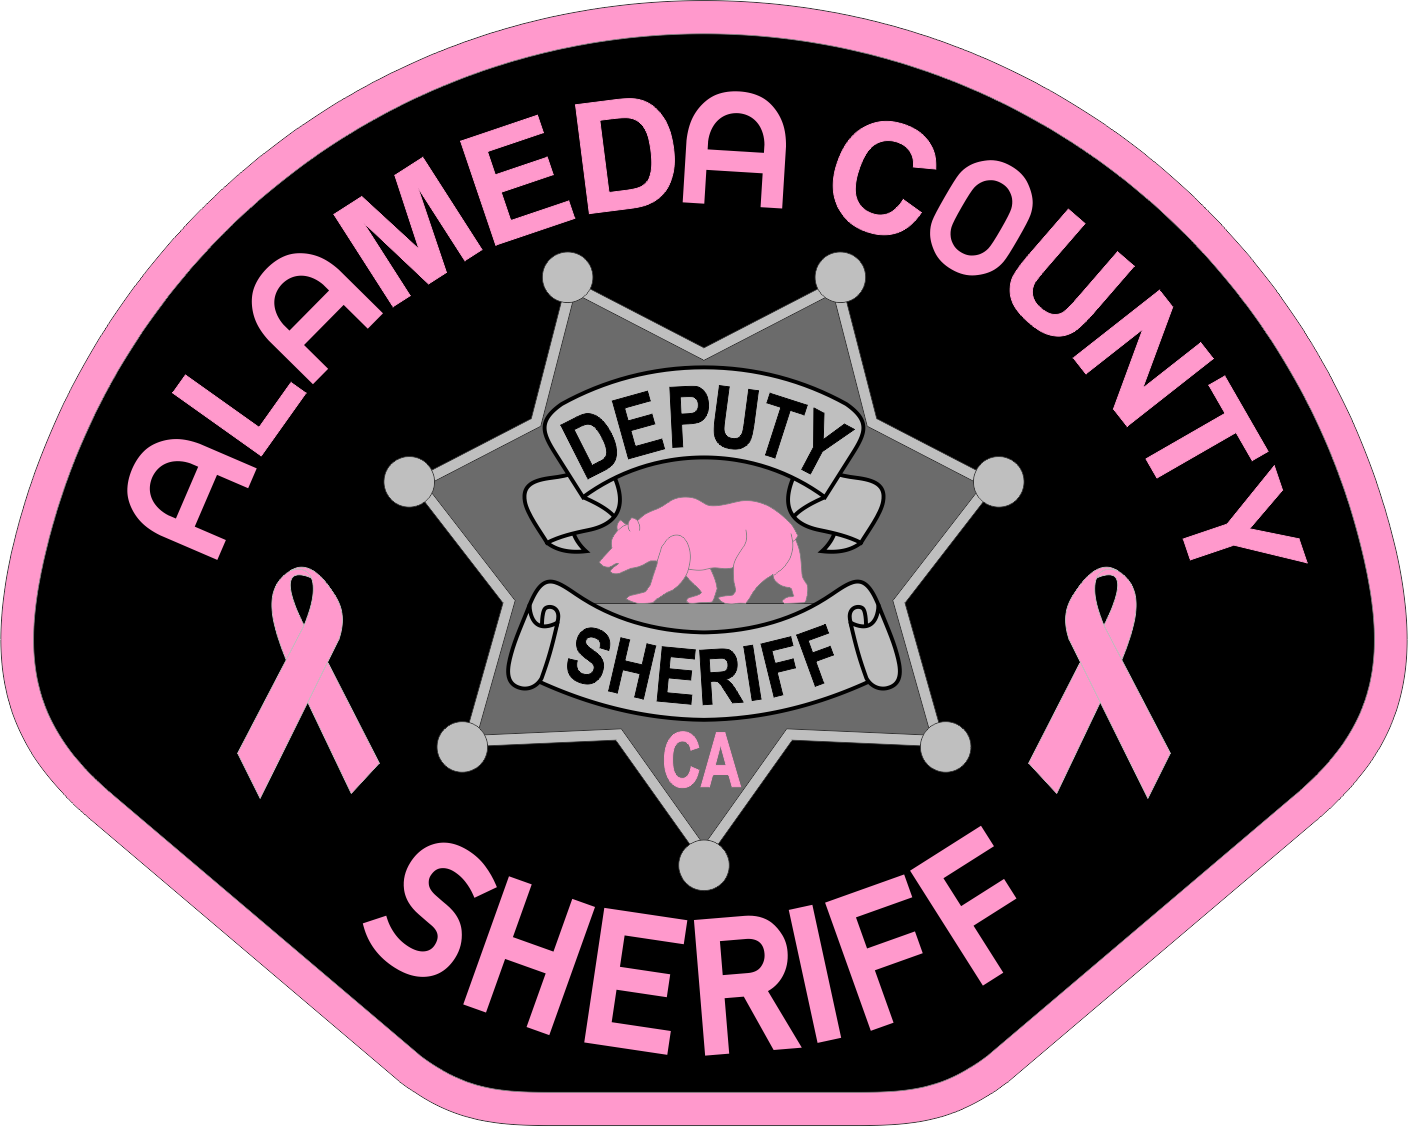 ALAMEDA CO SHERIFF (CA) - PINK PATCH 2018.png